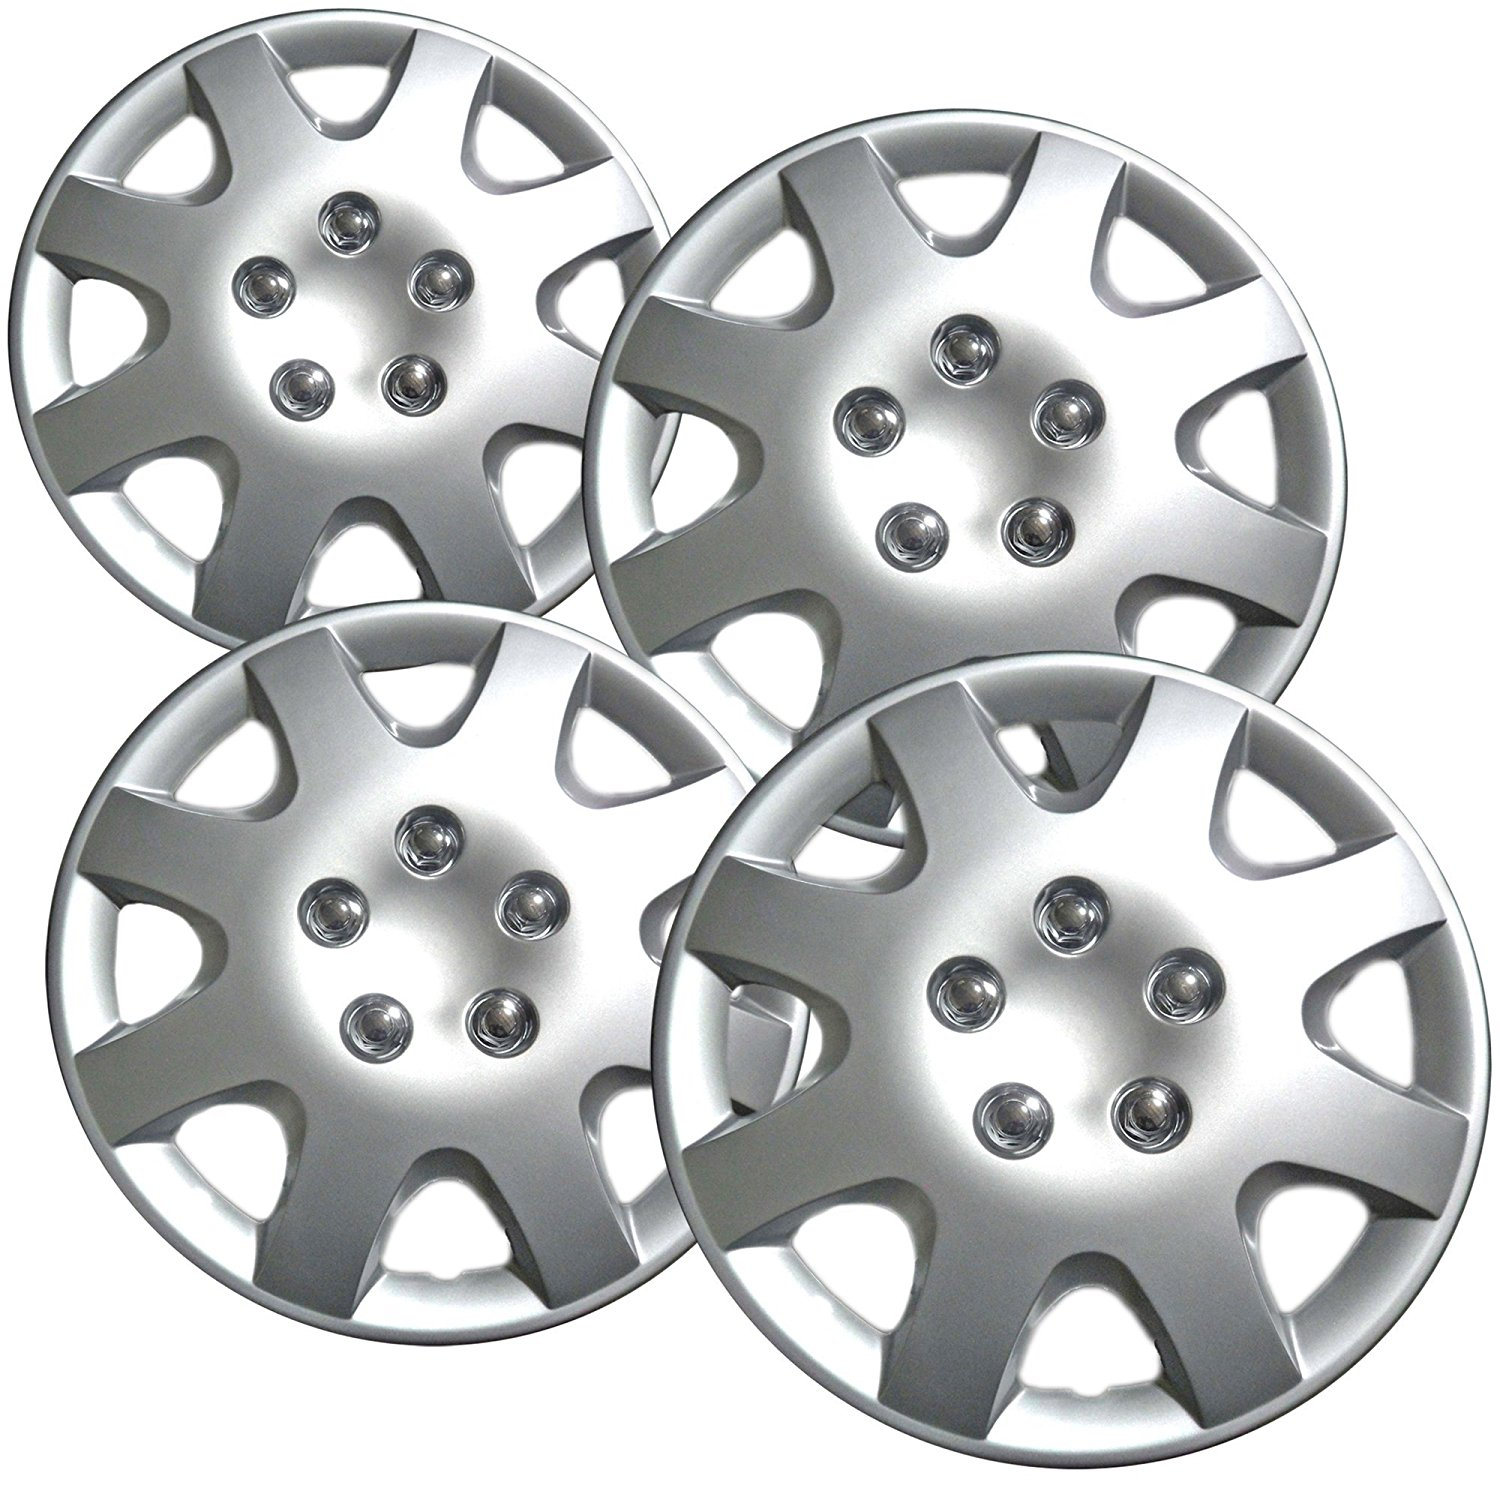 15 Inch Silver Wheel Covers For 2001 2002 Honda Civic